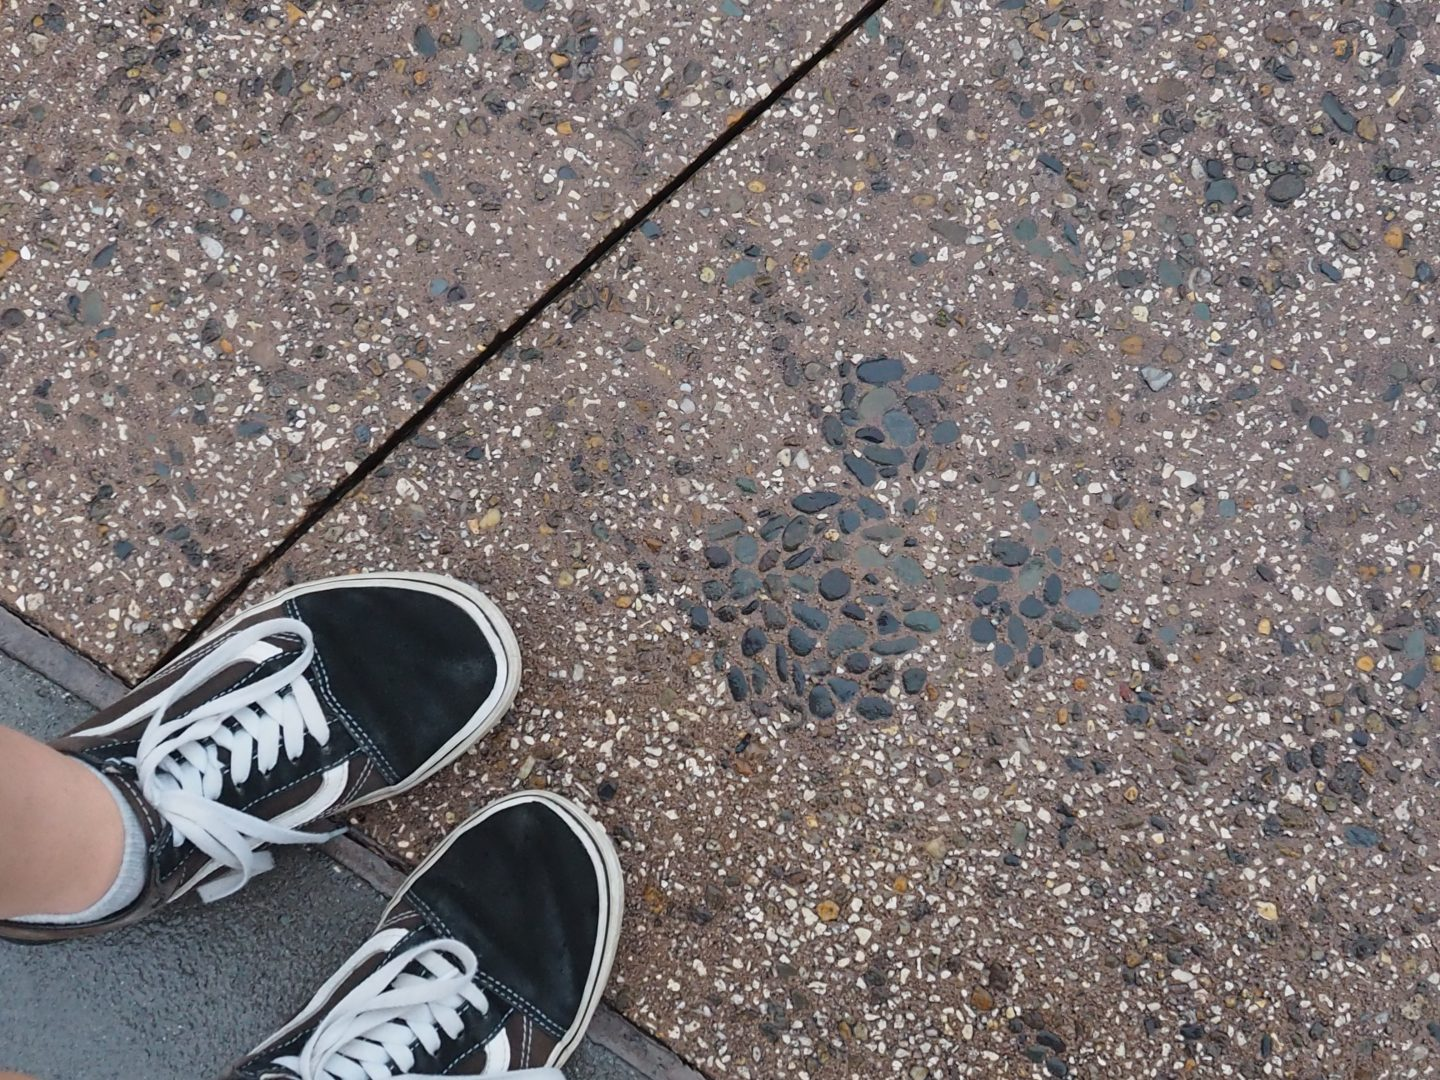 hidden mickey on the ground